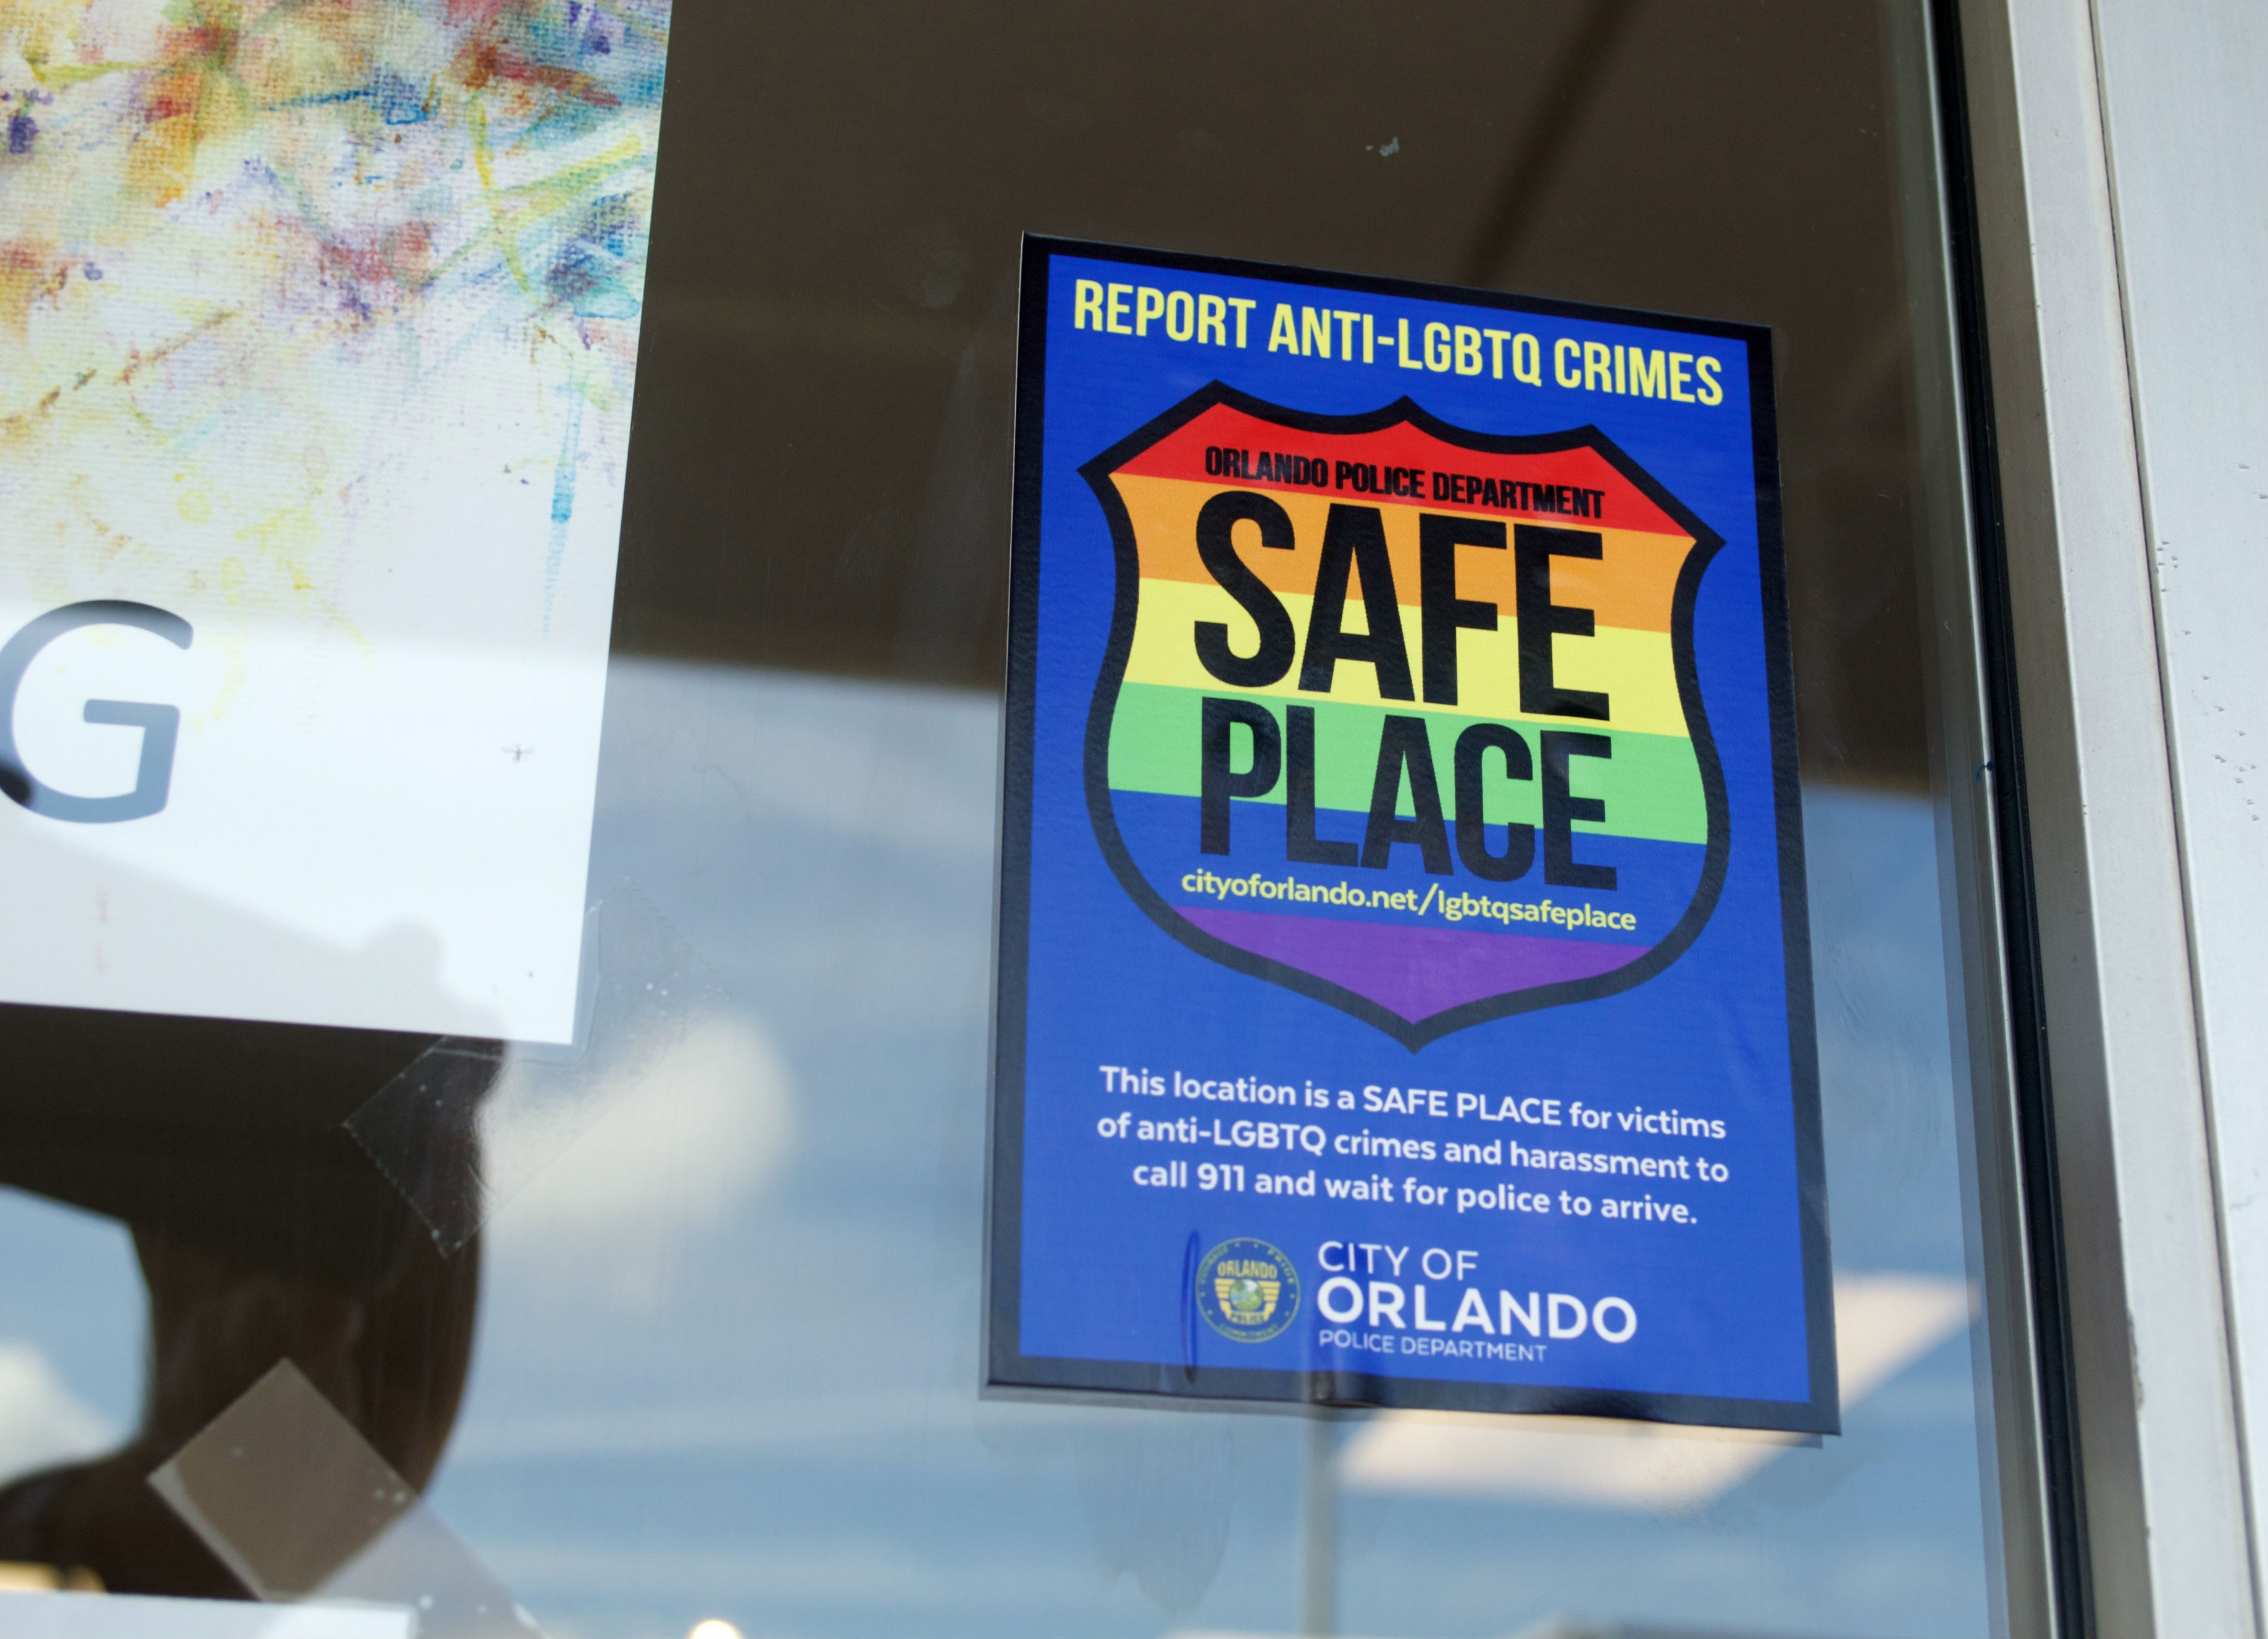 Orlando Police distribute LGBTQ 'safe place' decals to local